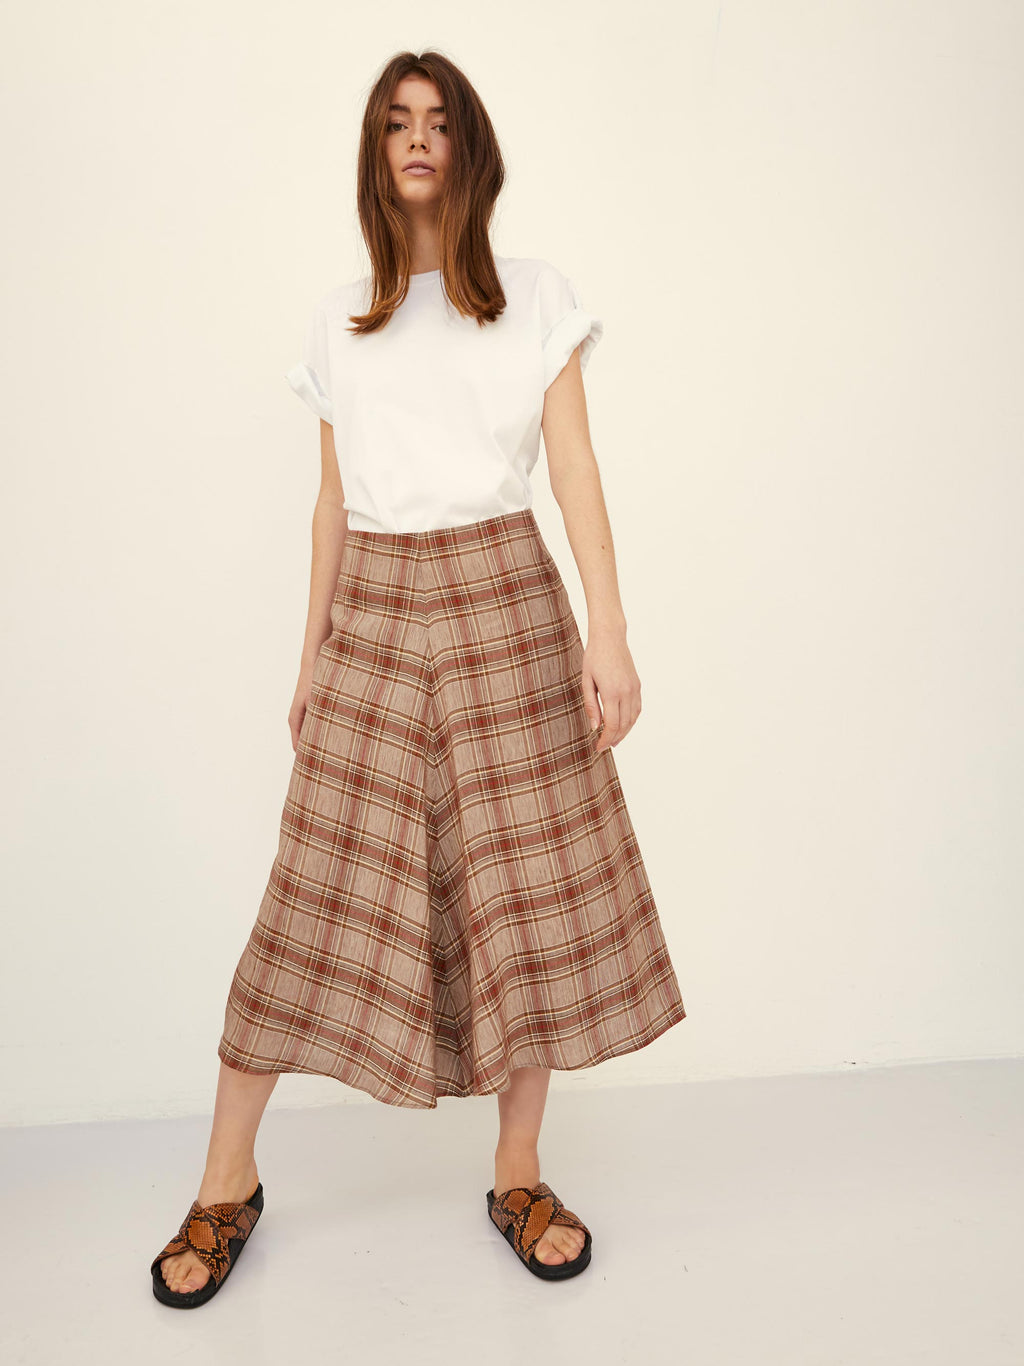 Rika Studios Flow skirt